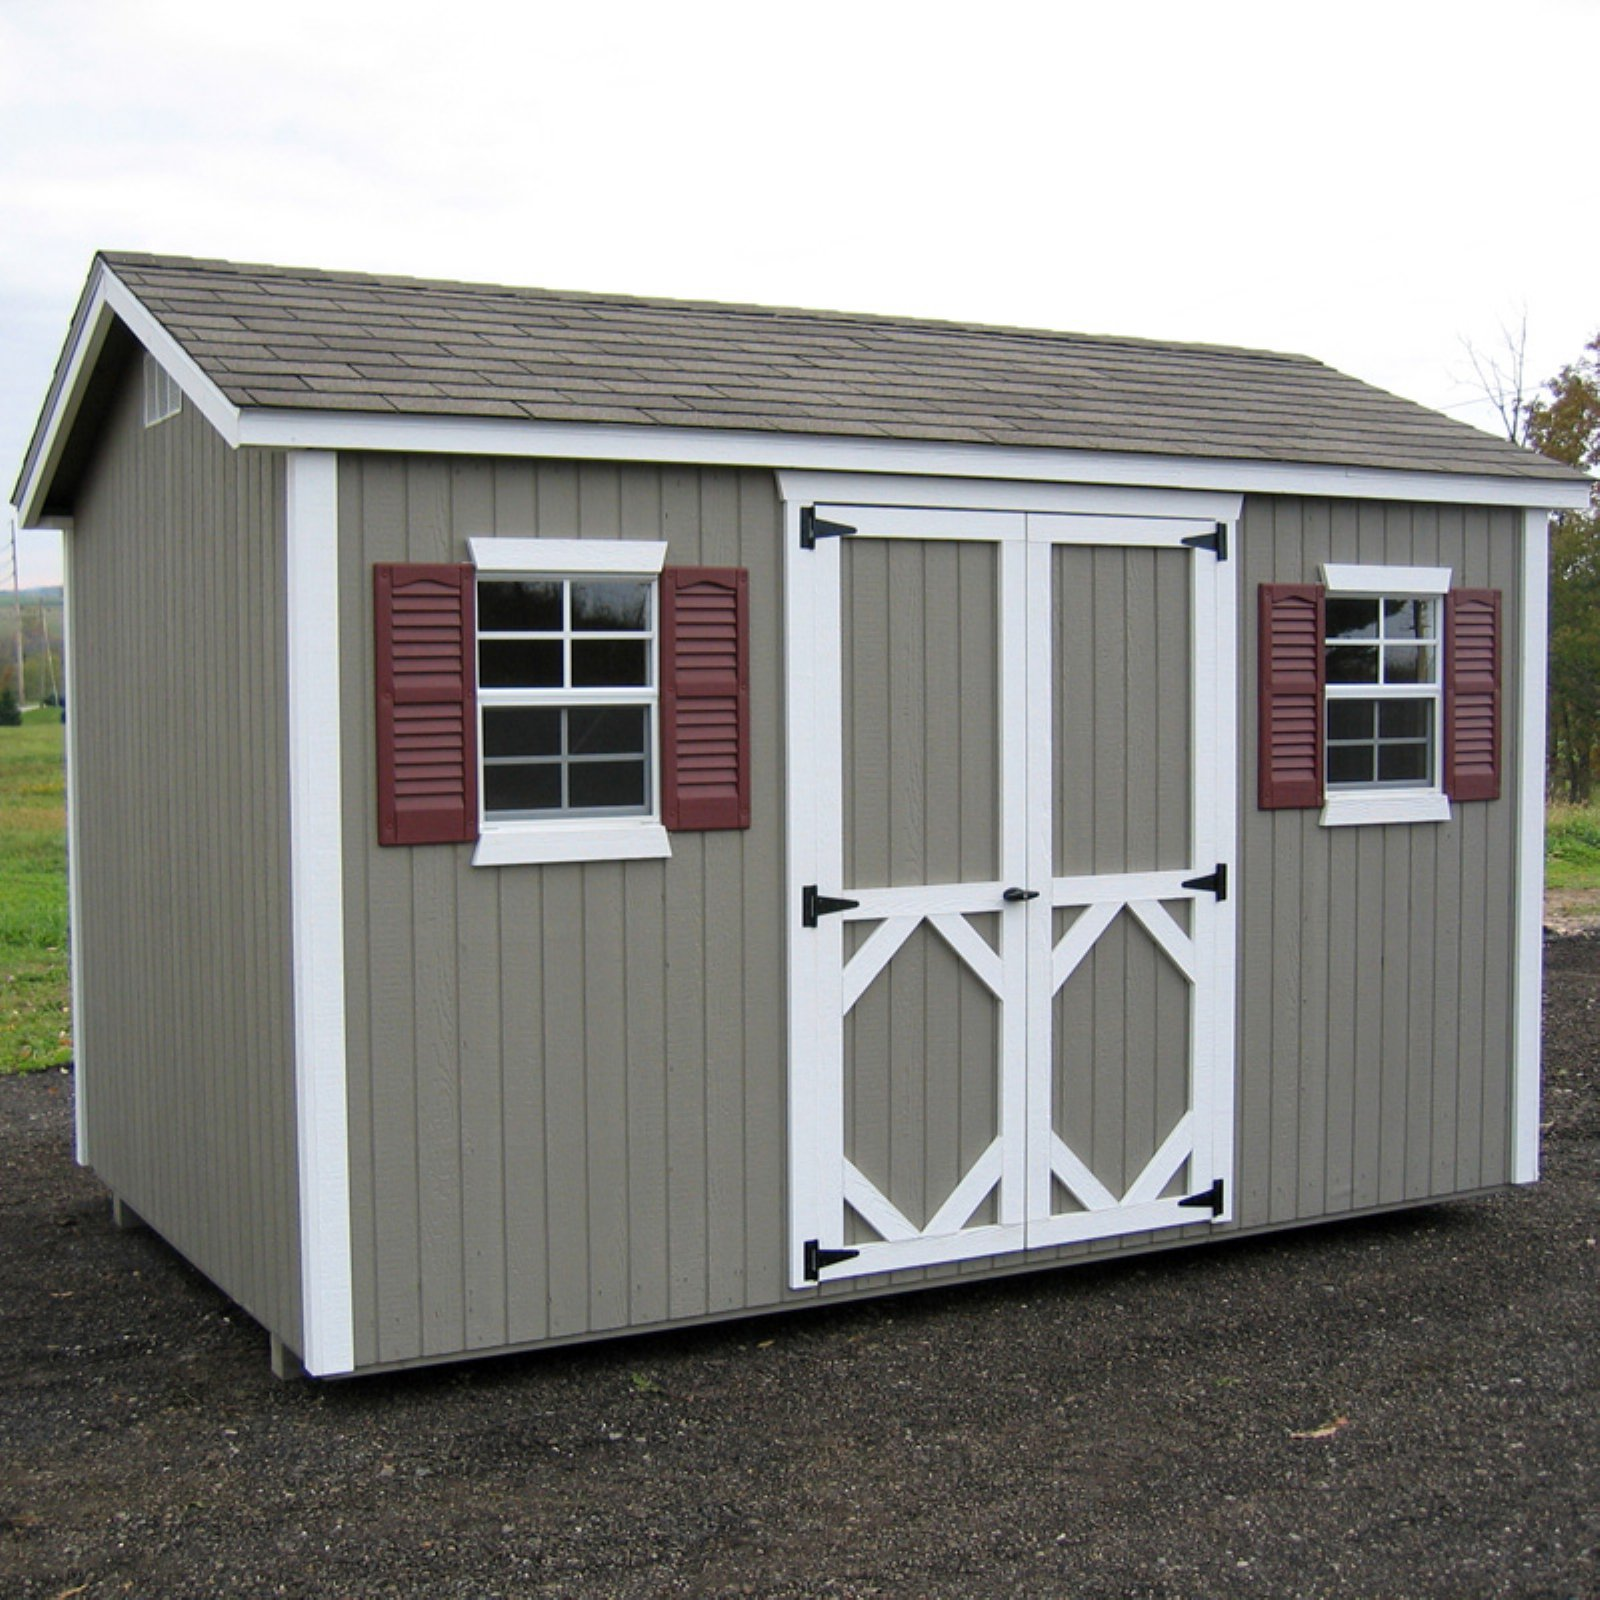 Little Cottage 12 x 8 ft. Classic Wood Workshop Panelized Garden Shed